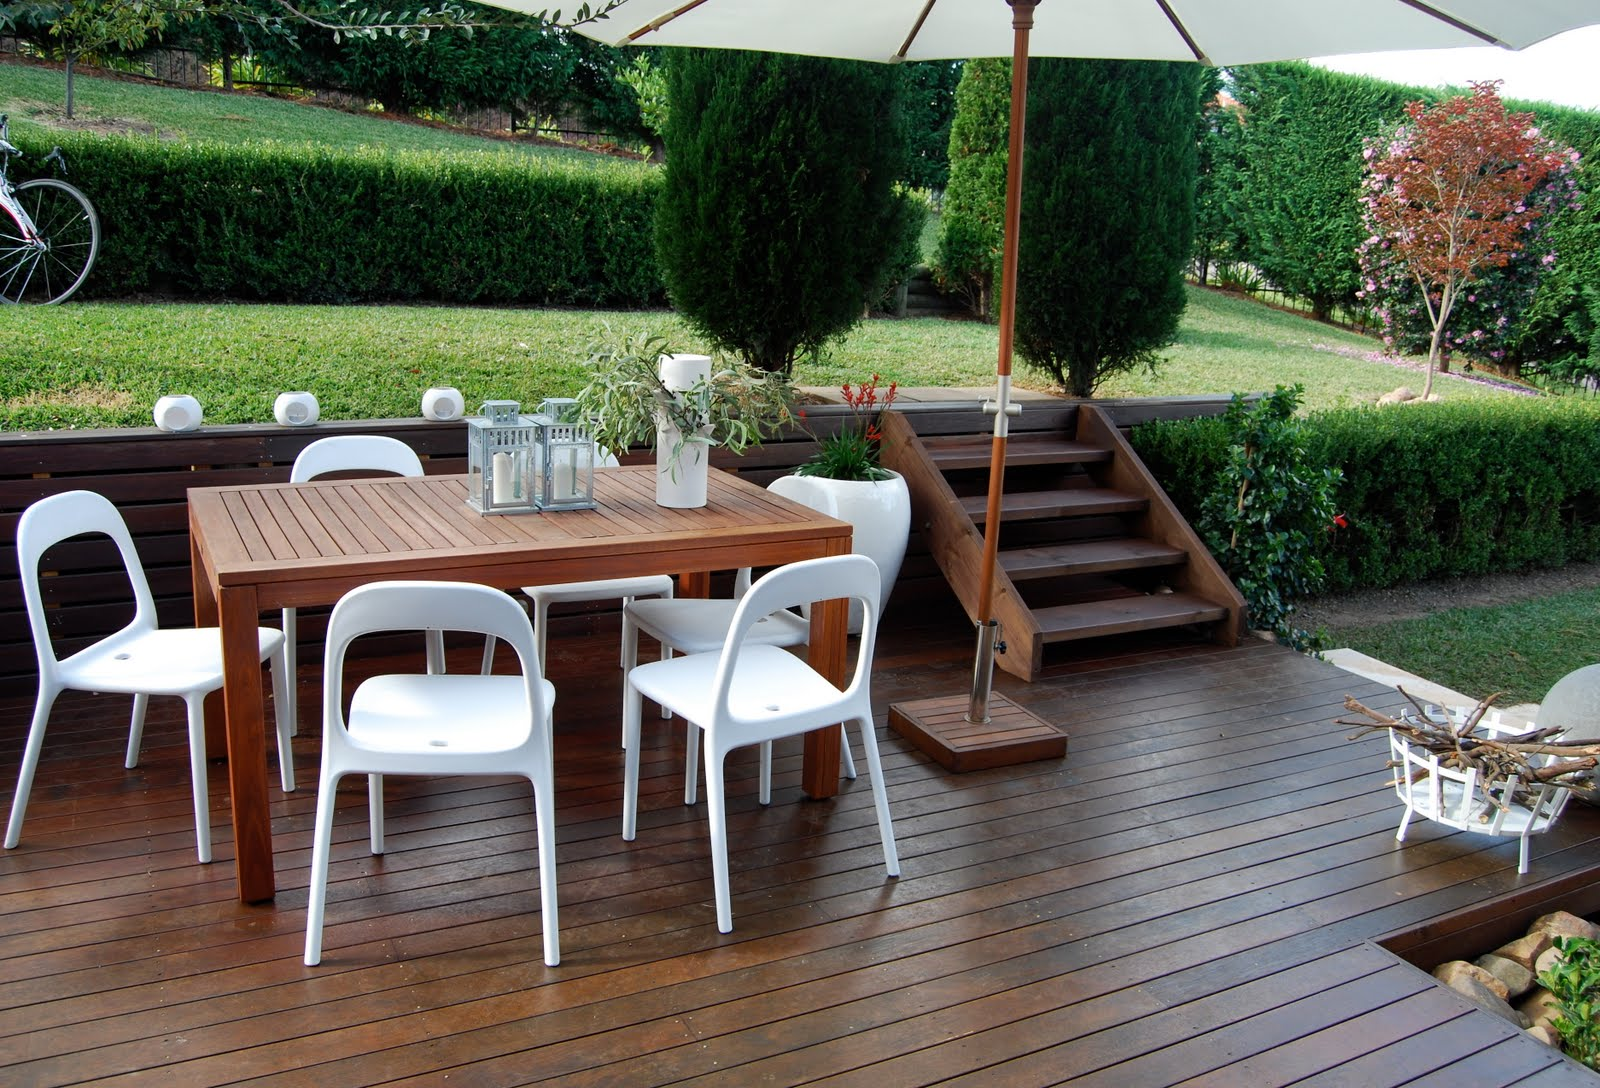 kids-outdoor-furniture-ikea-kids-outdoor-furniture-ikea-home-ikea-patio-furniture